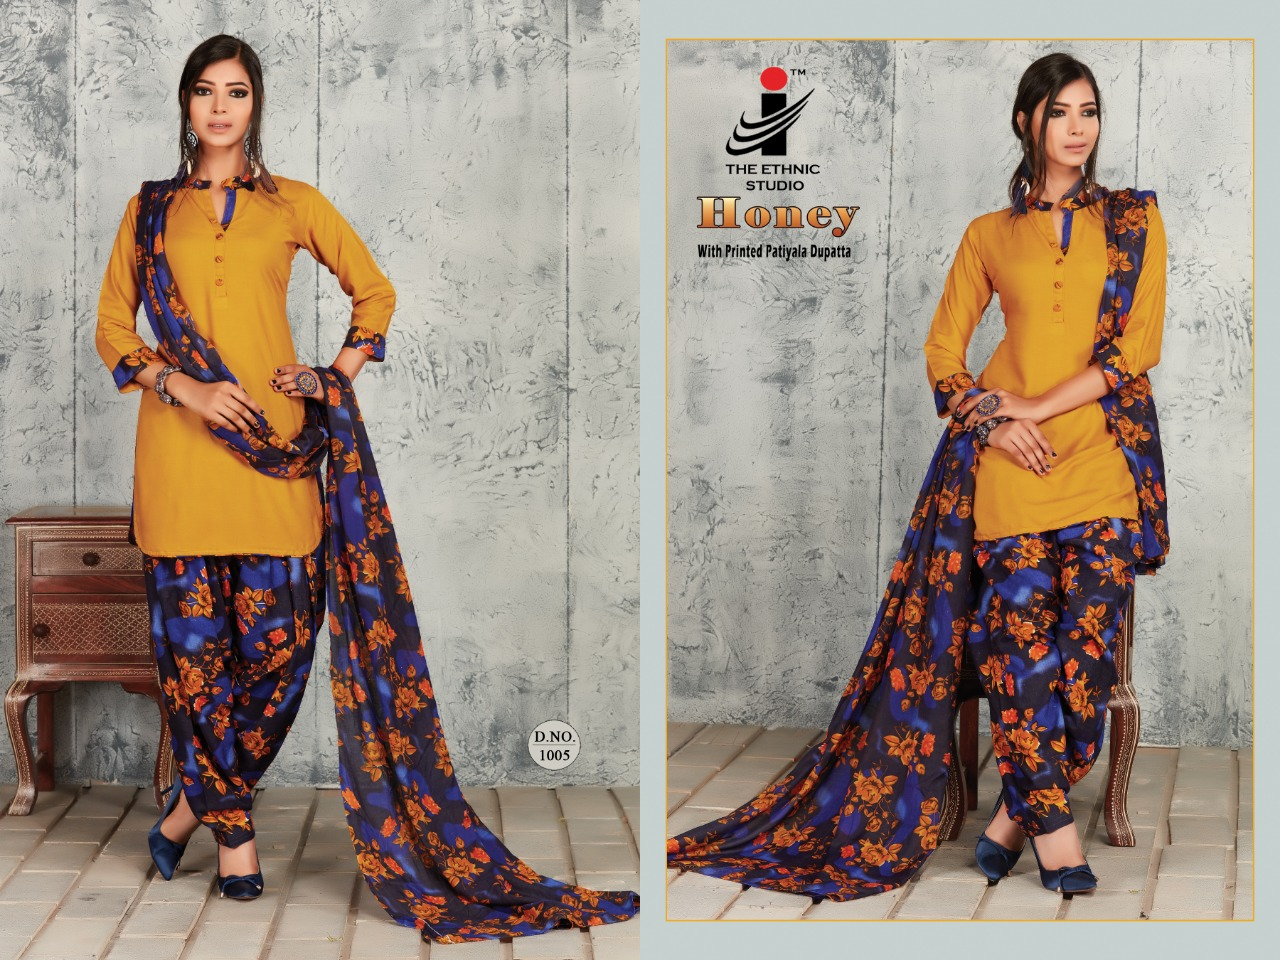 The Ethnic Studio Honey collection 2